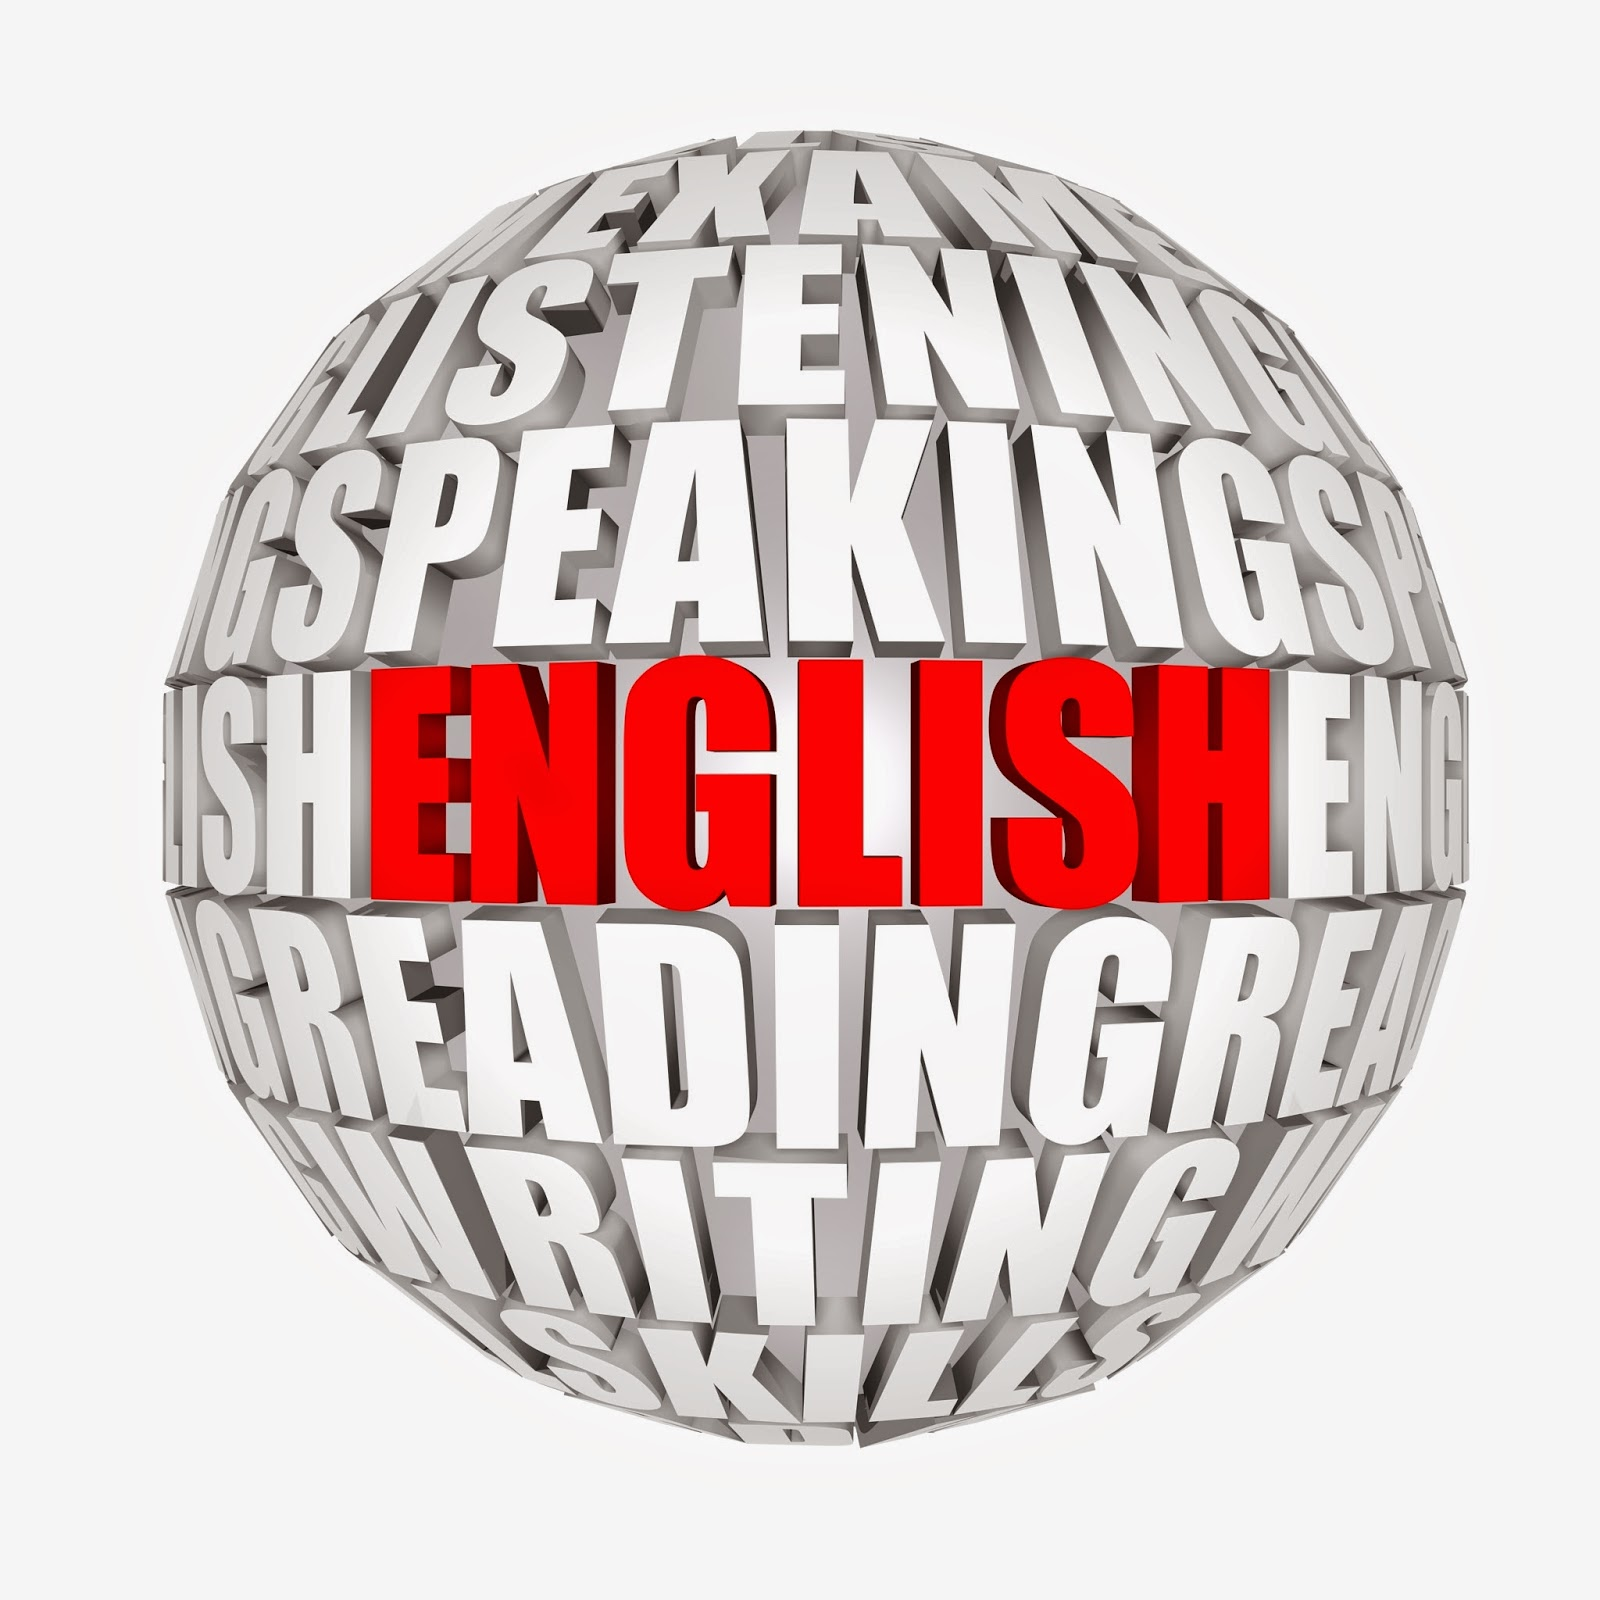 importance of english language scholars academia in english got the status of the second language english is taught as second language in gujarat english language is used in each and every